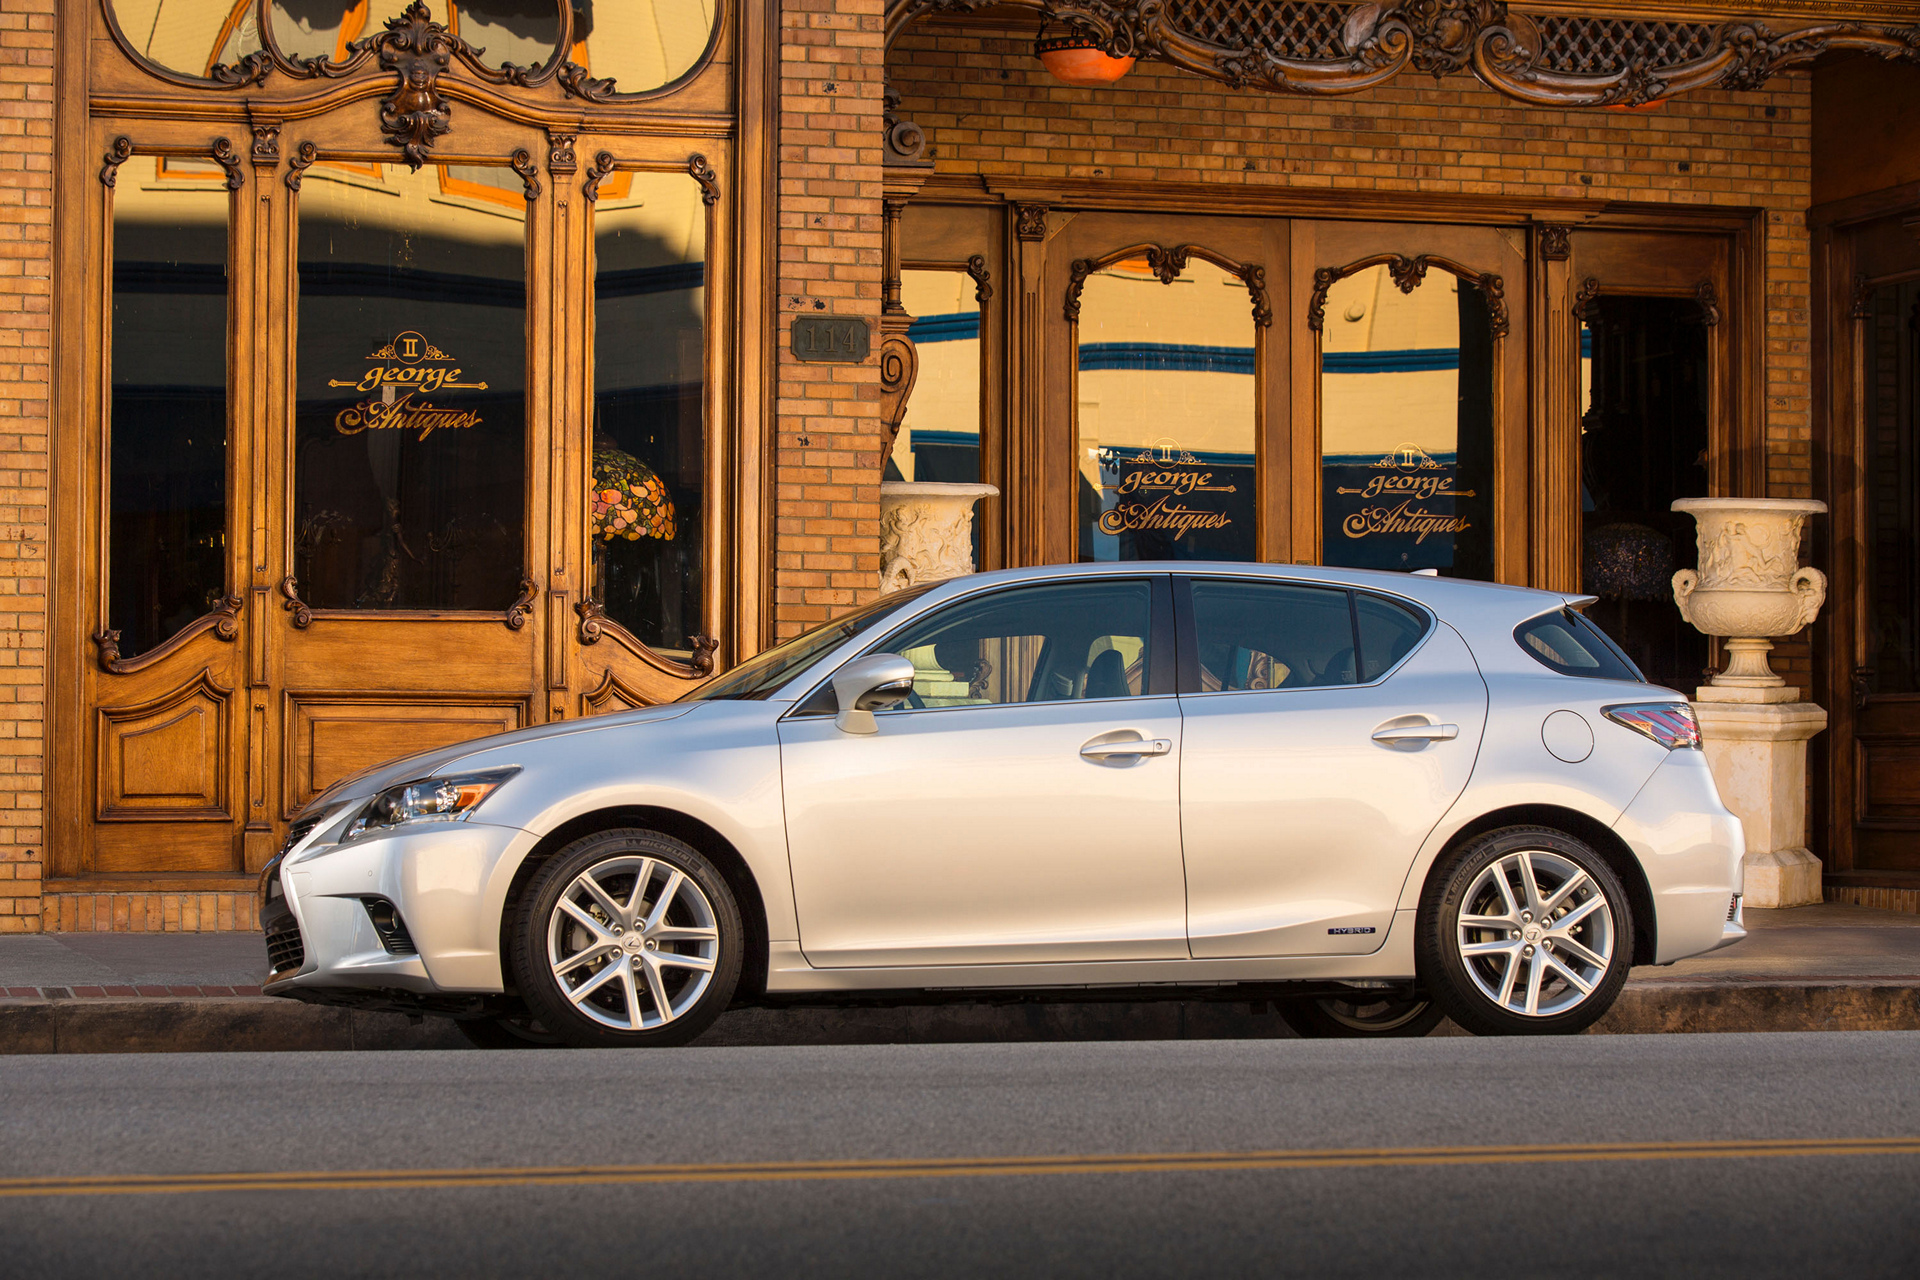 2016 Lexus CT 200h © Toyota Motor Corporation